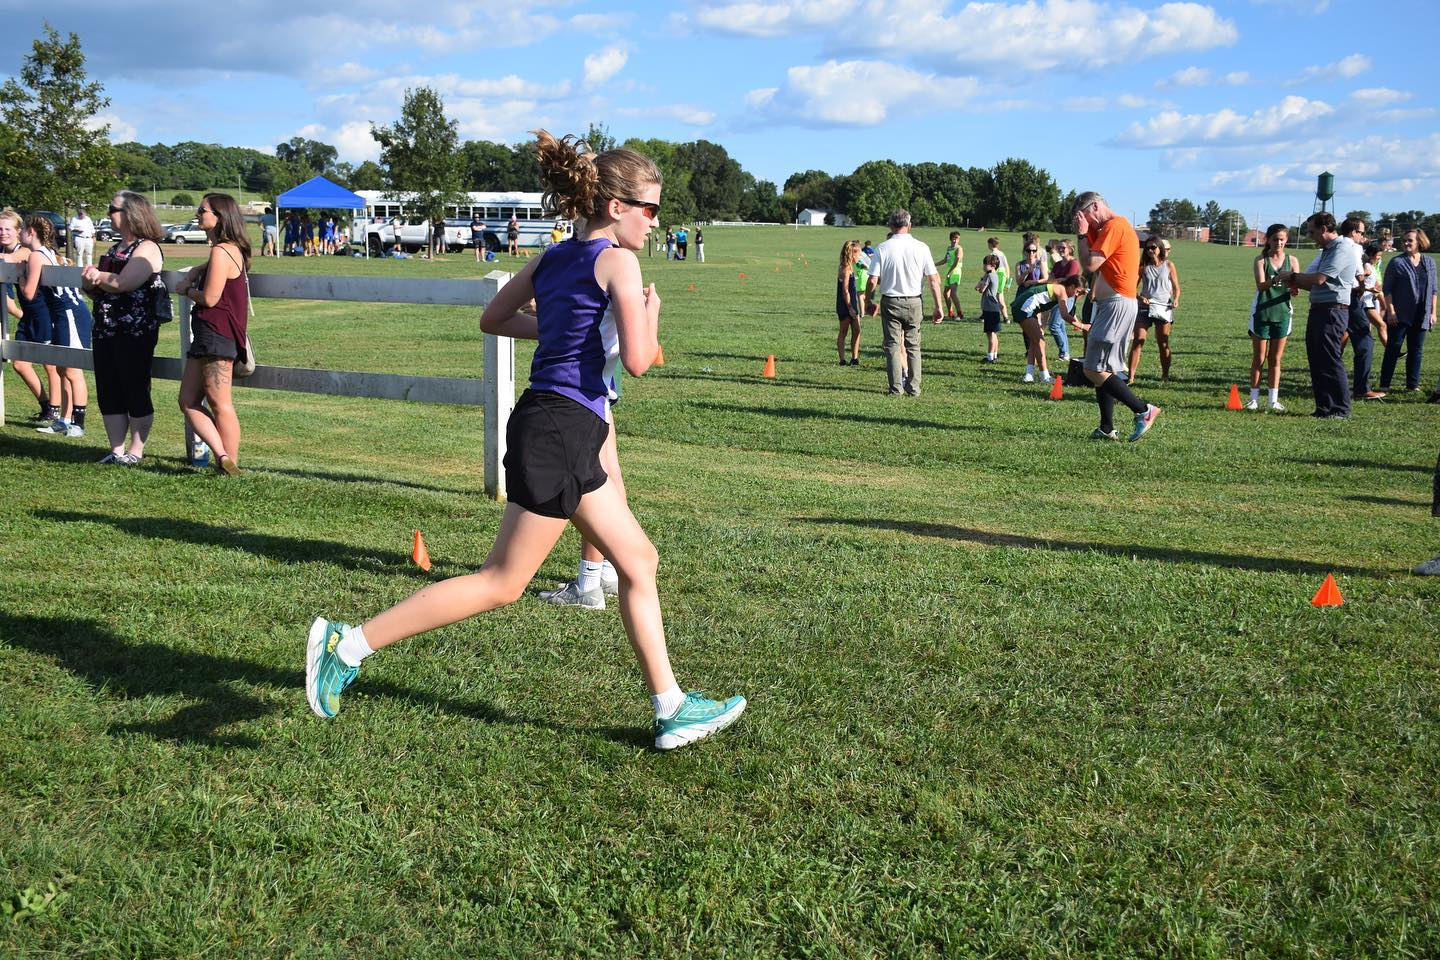 Another middle school cross country meet is in the books, and Sara set another 2-mile personal record with a finish time of 16:22, which is 55 seconds better than her time last week. So proud of how hard she is working, and it has been a blast watching her grow and get stronger in the sport that I love! Go Sara!! #family #running #crosscountry